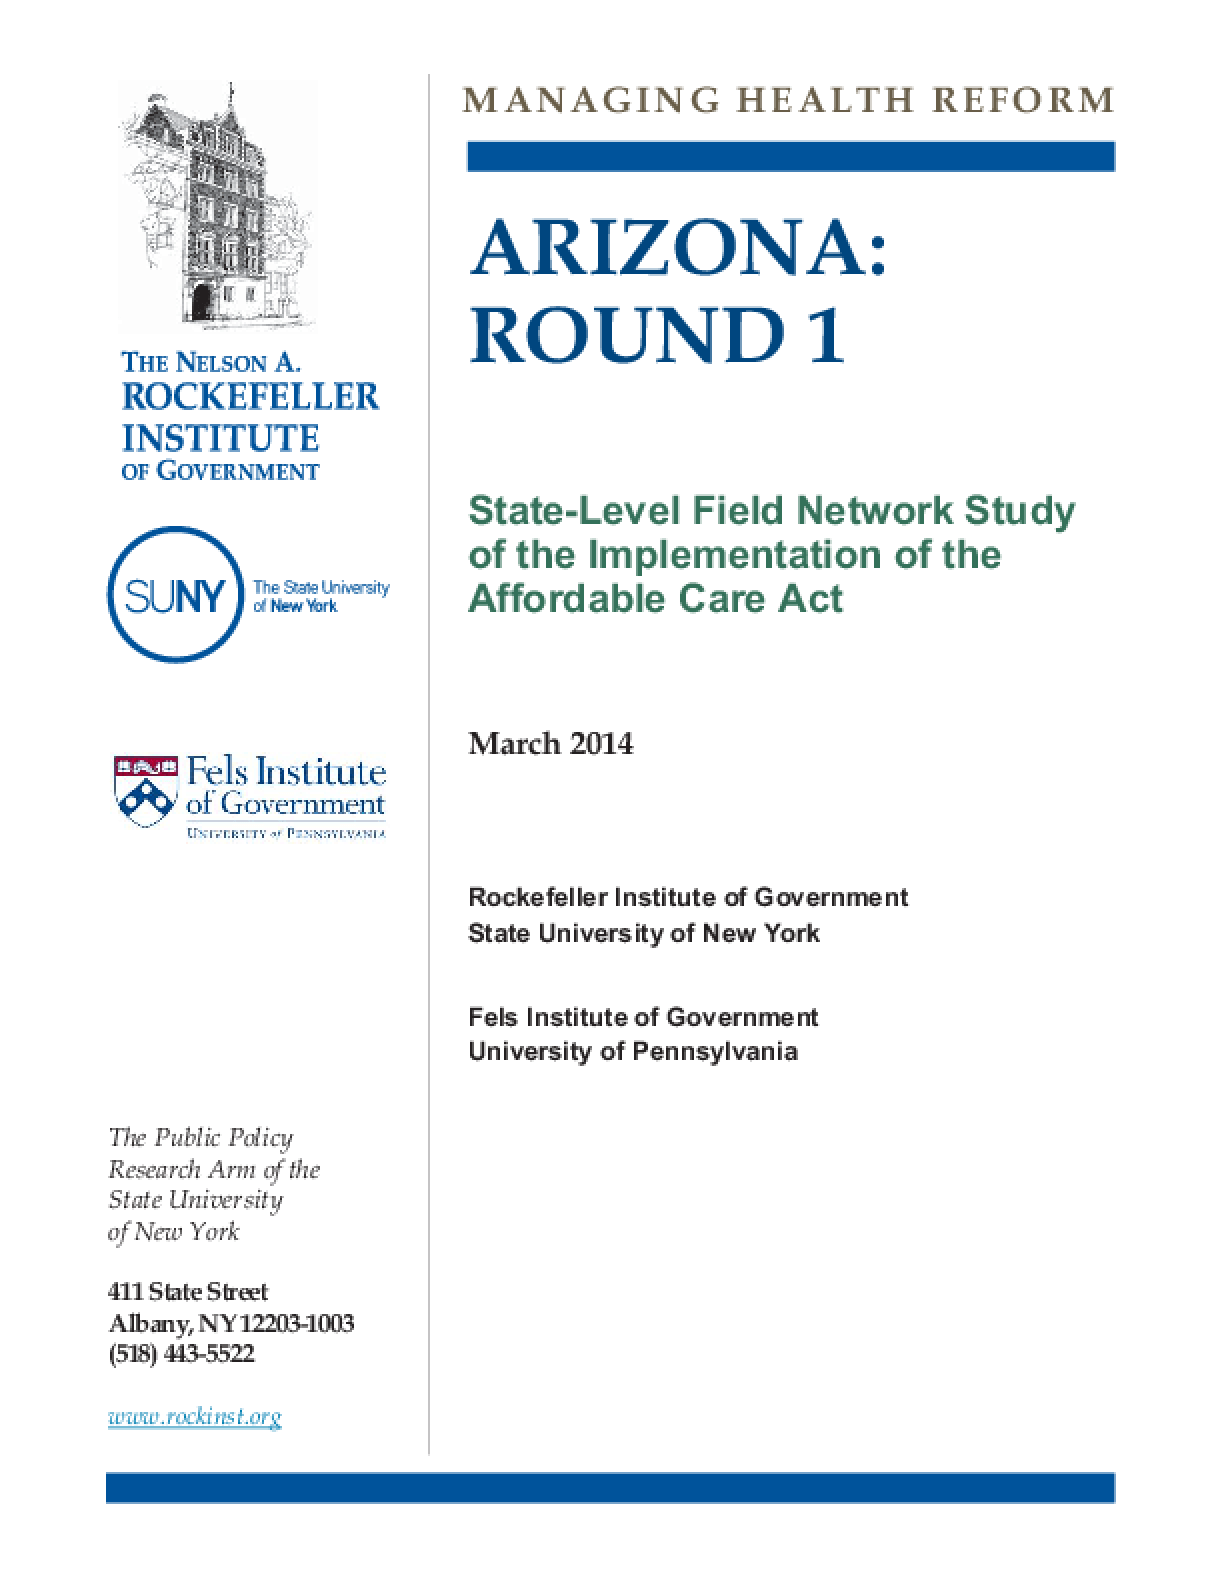 Arizona: Round 1 - State-Level Field Network Study of the Implementation of the Affordable Care Act